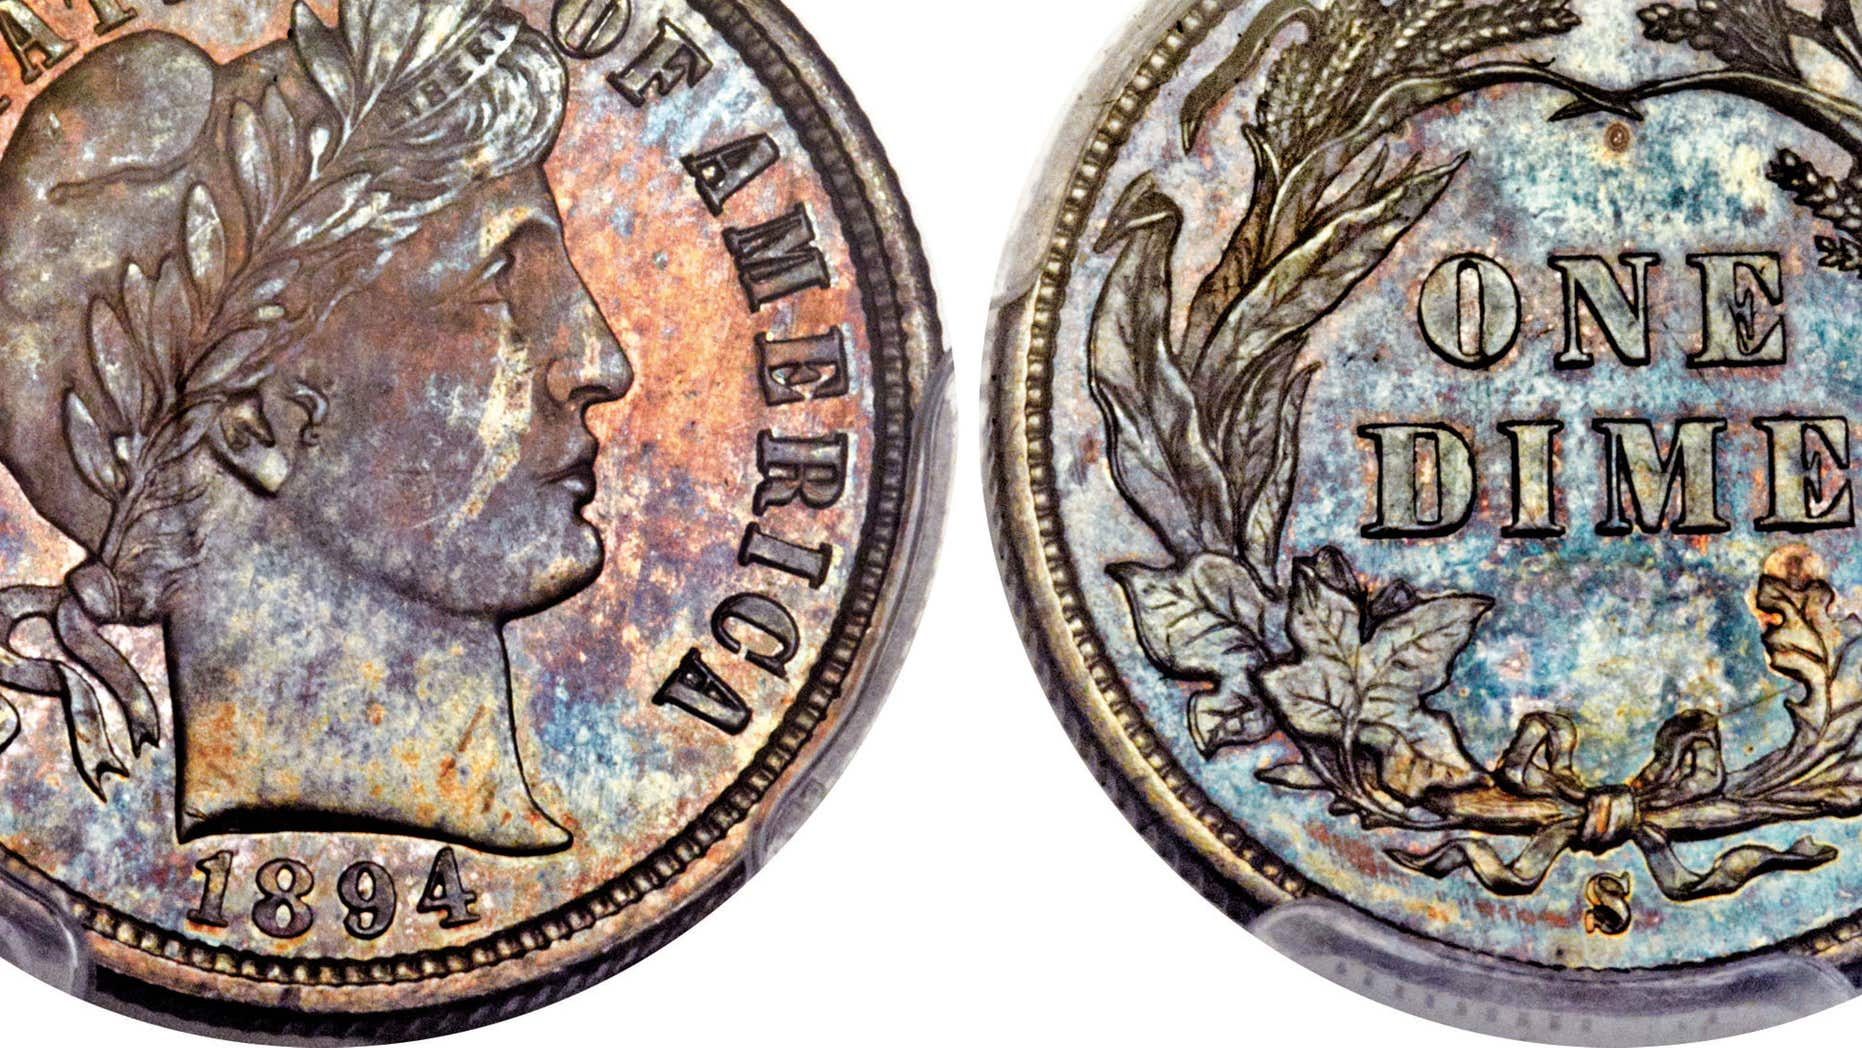 This Nov. 10, 2015, photo combination provided by Heritage Auctions, shows the front and back of a rare 1894 dime that will be put up for auction Thursday Jan. 7, 2016 in Tampa, Fla.